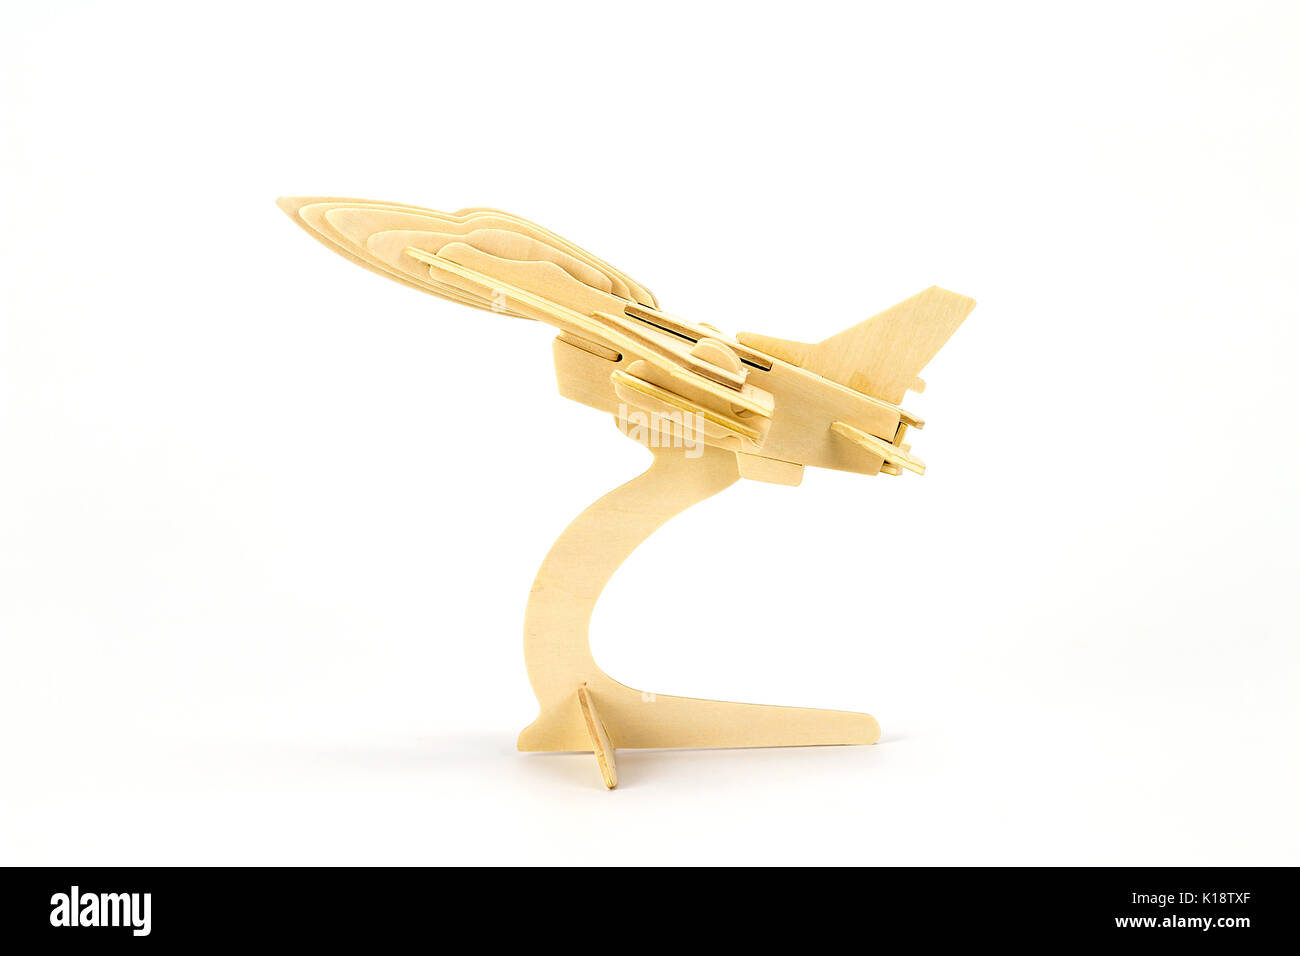 Wooden toy airplane model isolated on white background - Stock Image